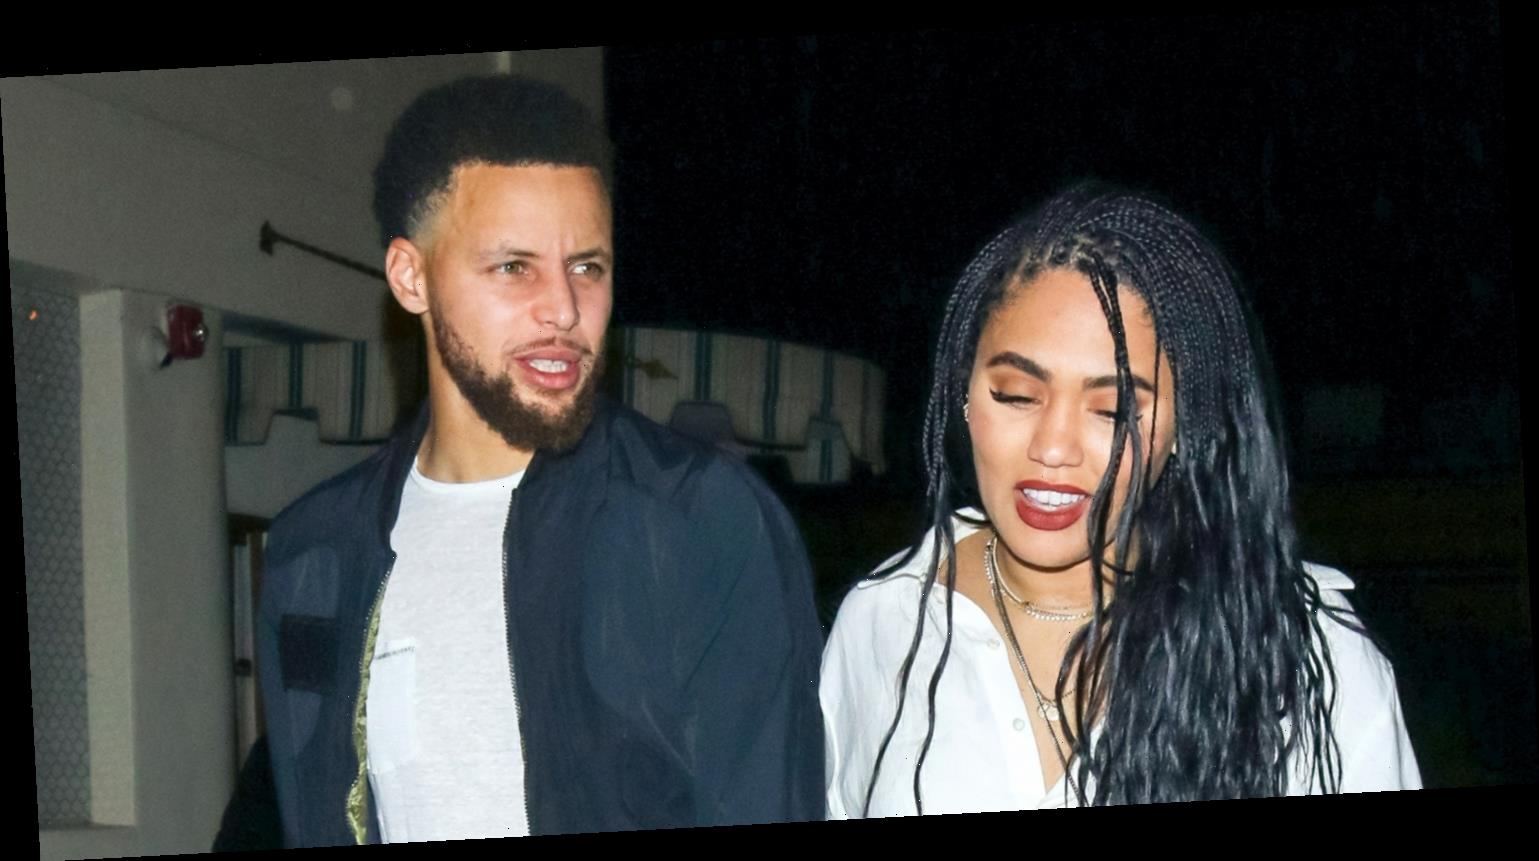 Stephen Curry & Wife Ayesha Hold Hands on Date Night in WeHo